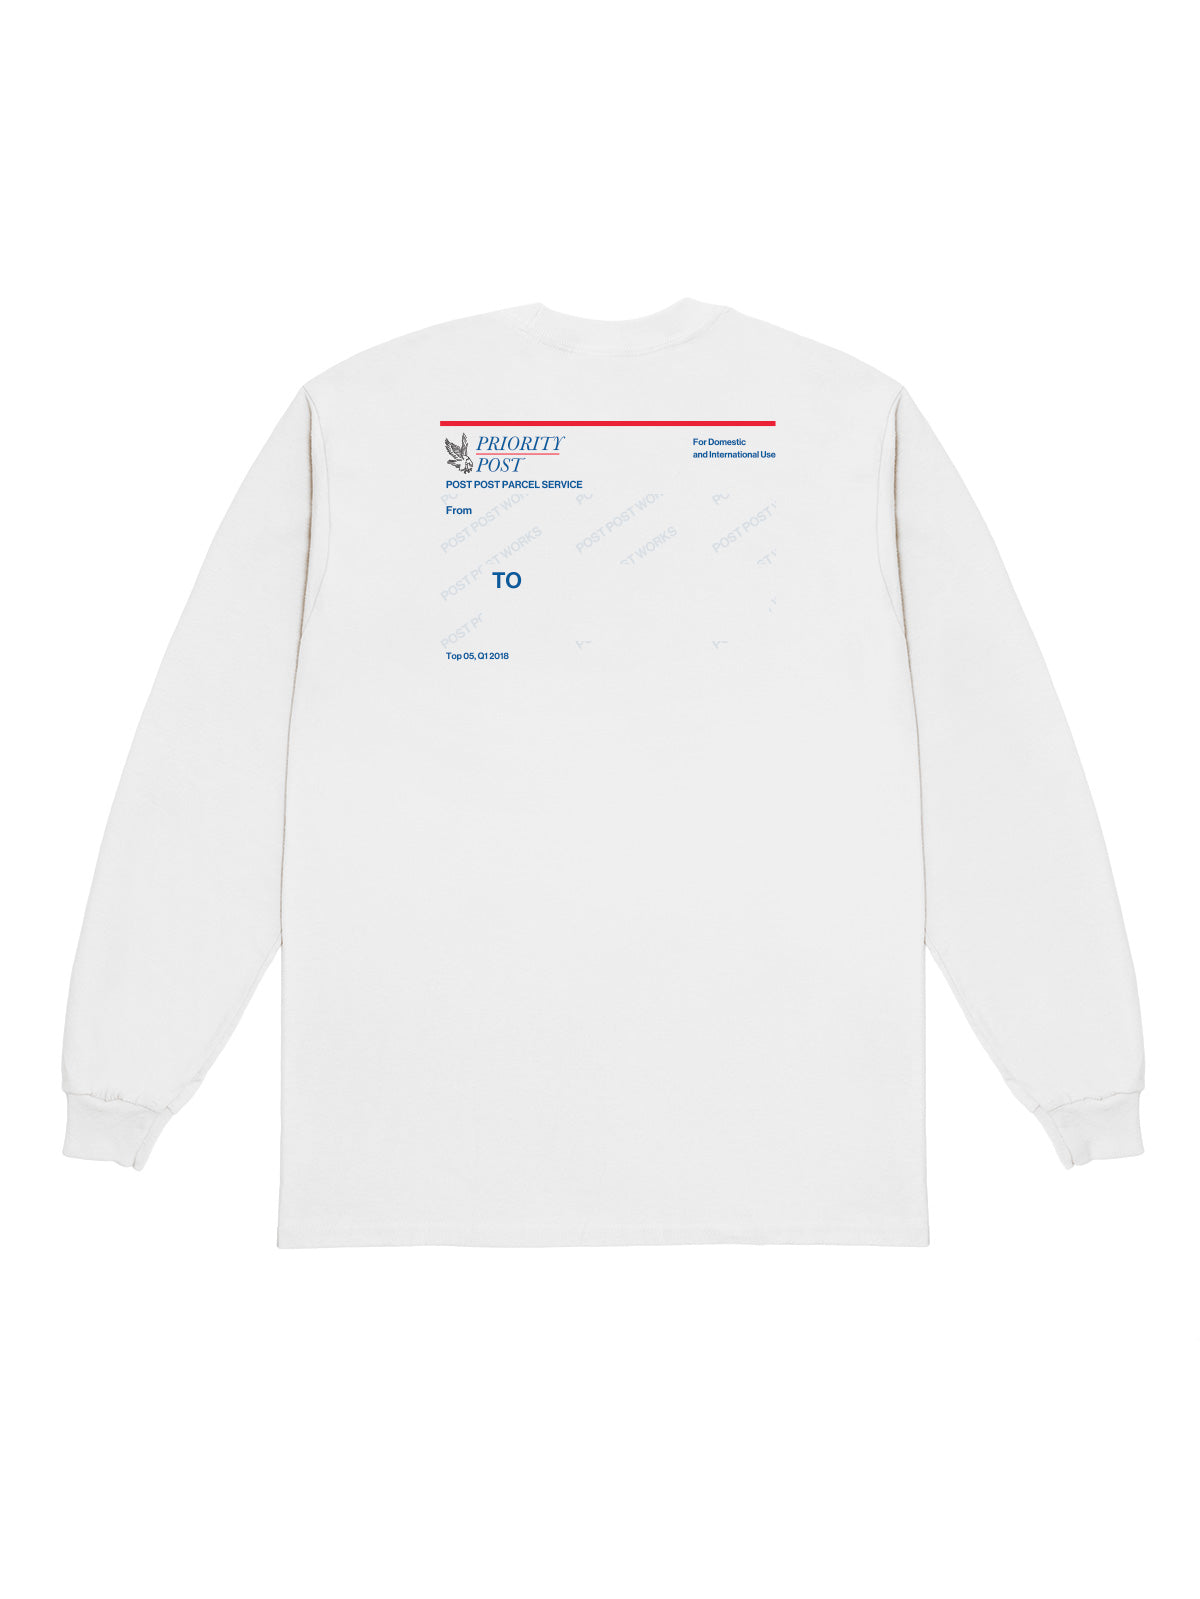 Post Post Parcel Service Tee, White